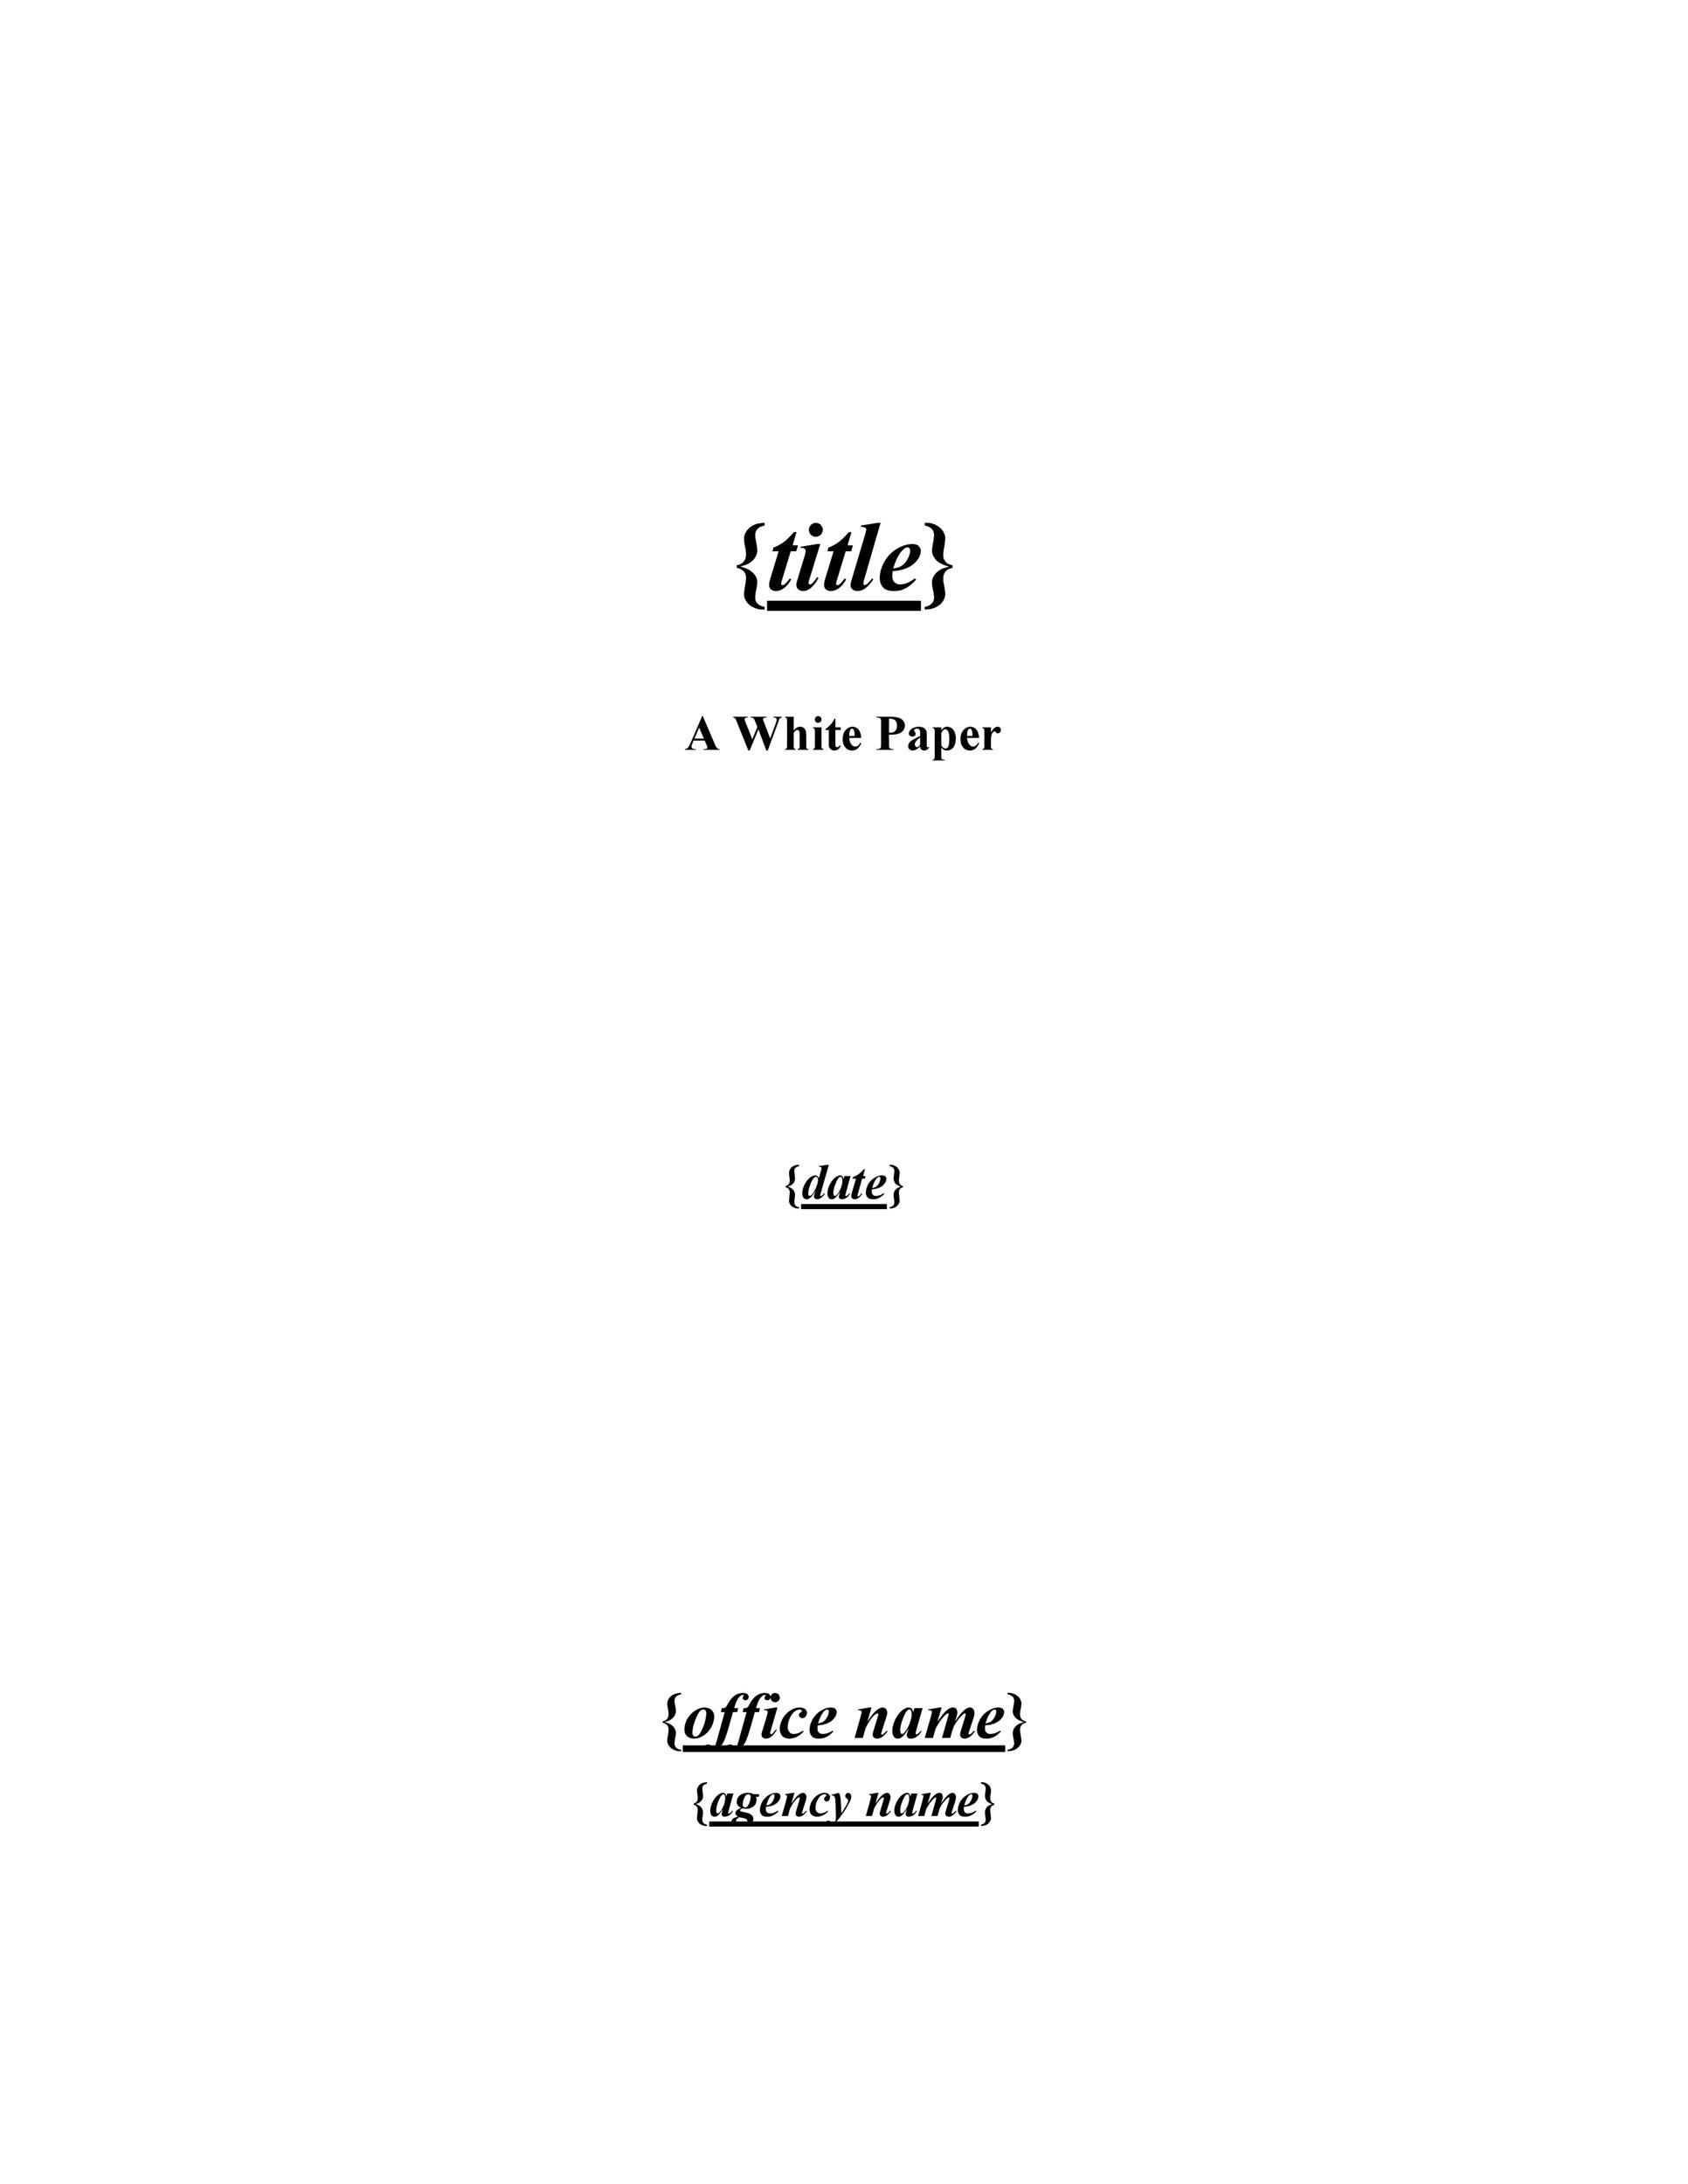 003 Impressive Free White Paper Template Microsoft Word Idea Full